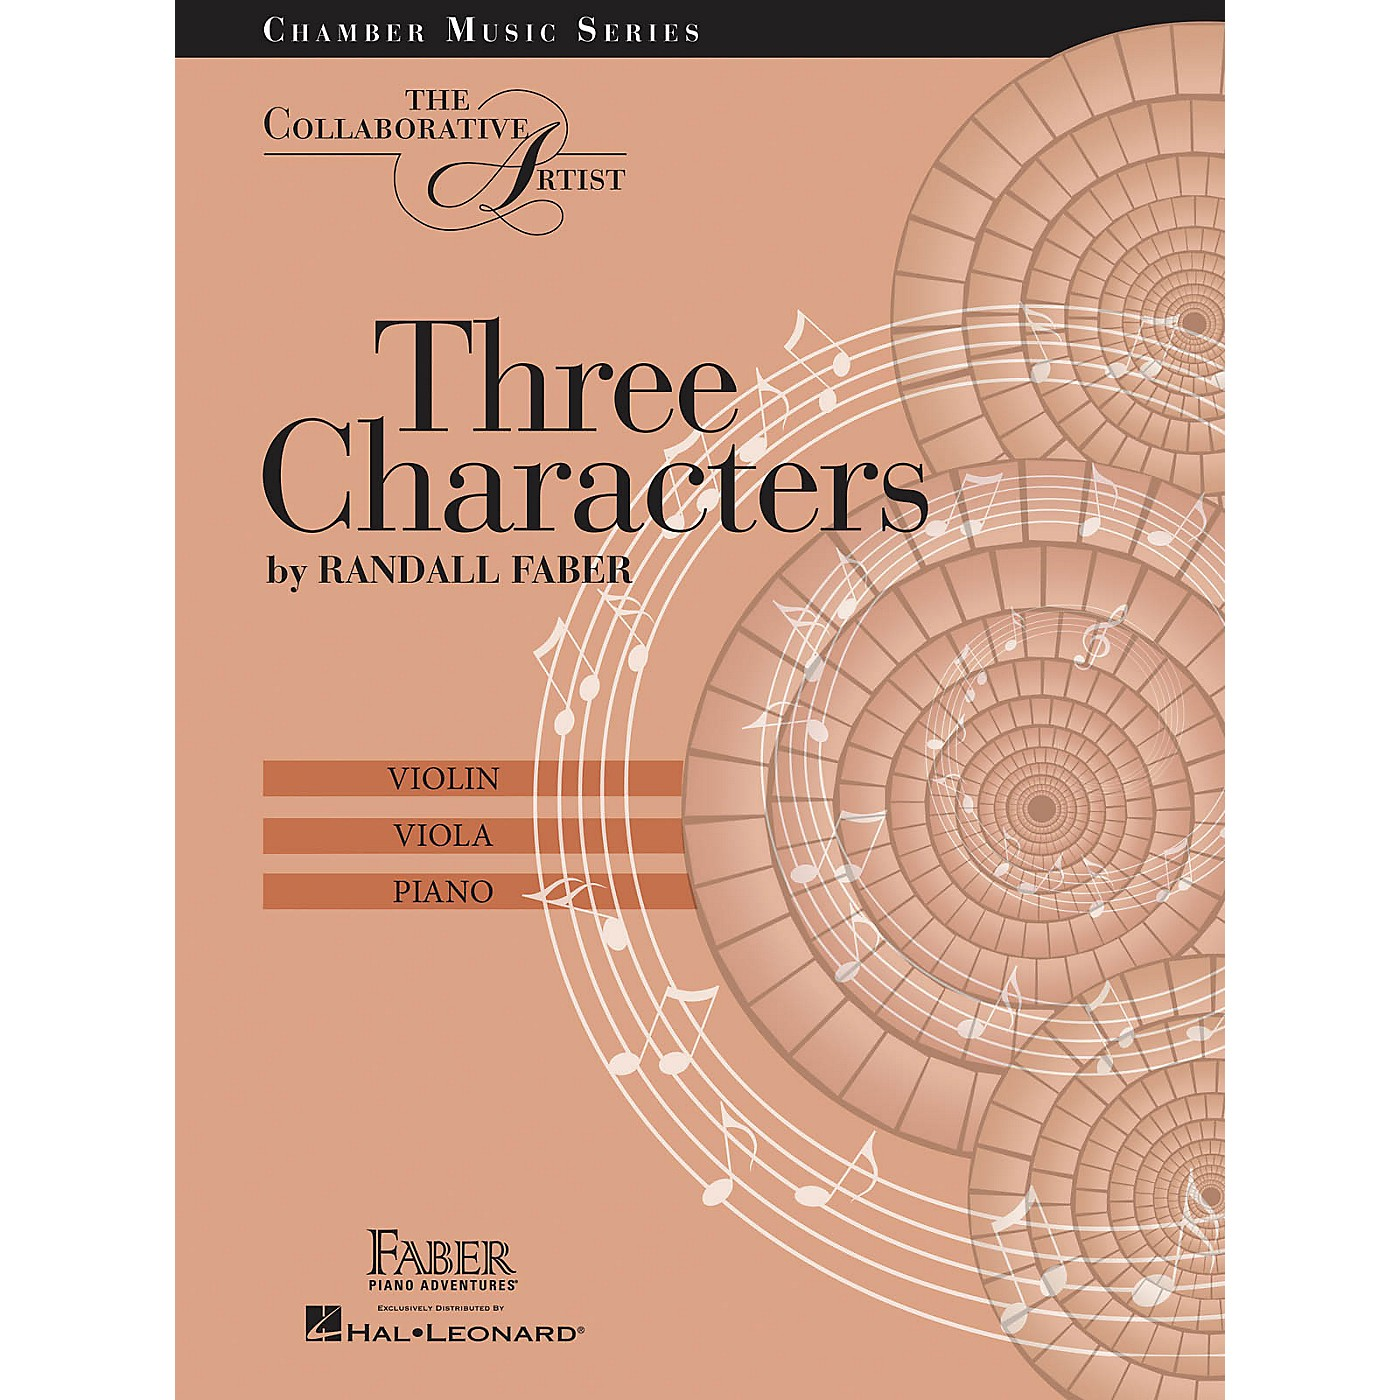 Faber Piano Adventures Three Characters - The Collaborative Artist Faber Piano Adventures by Randall Faber (Level Late Inter) thumbnail